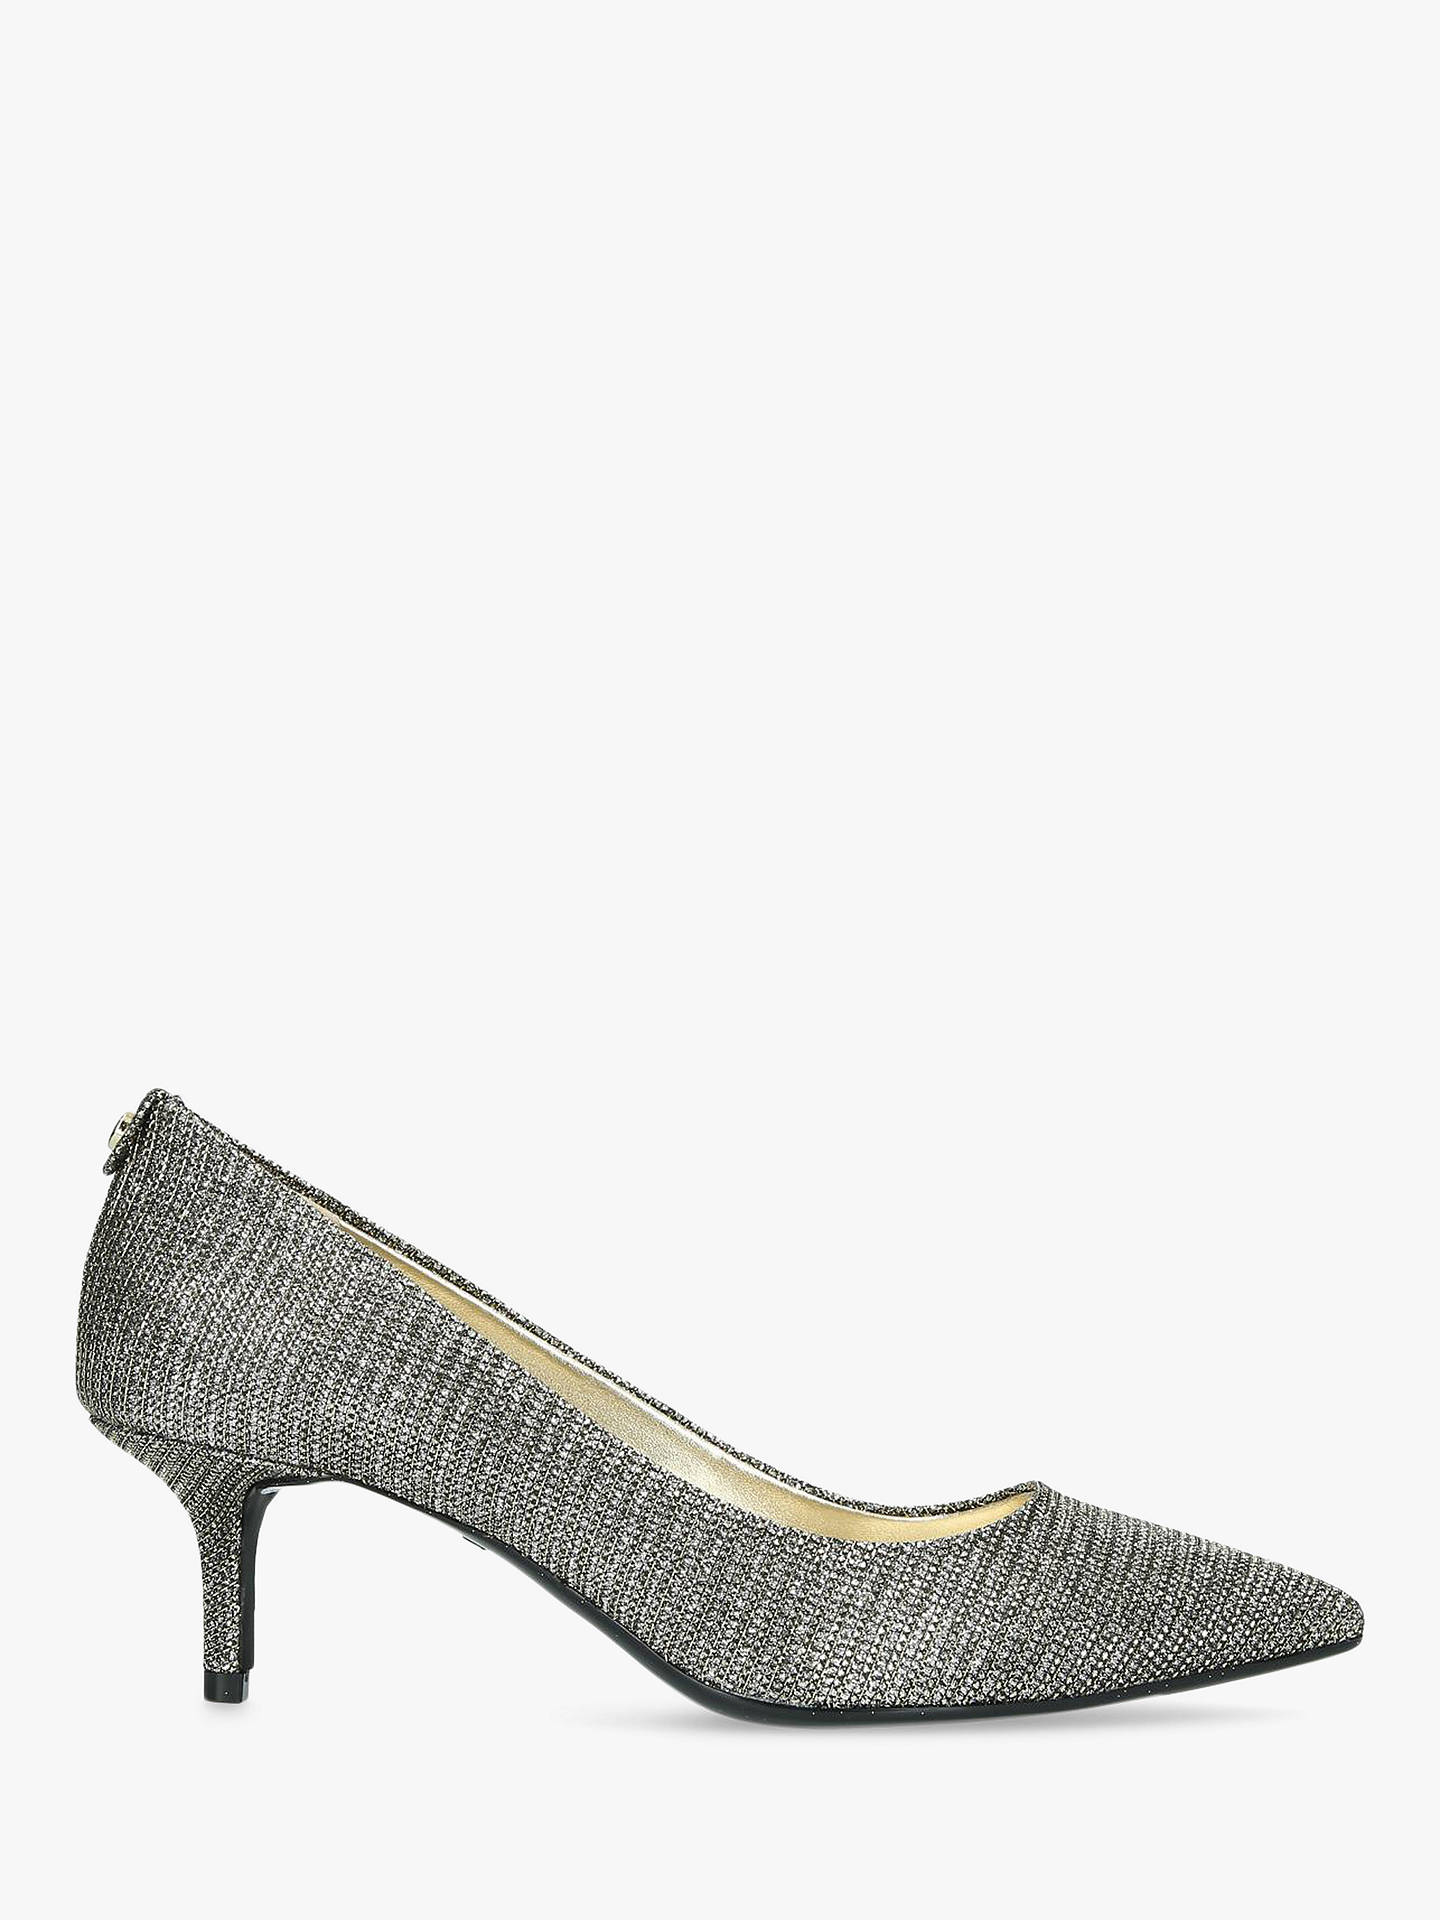 5afb9ffe98c Buy MICHAEL Michael Kors Flex Pointed Court Shoes